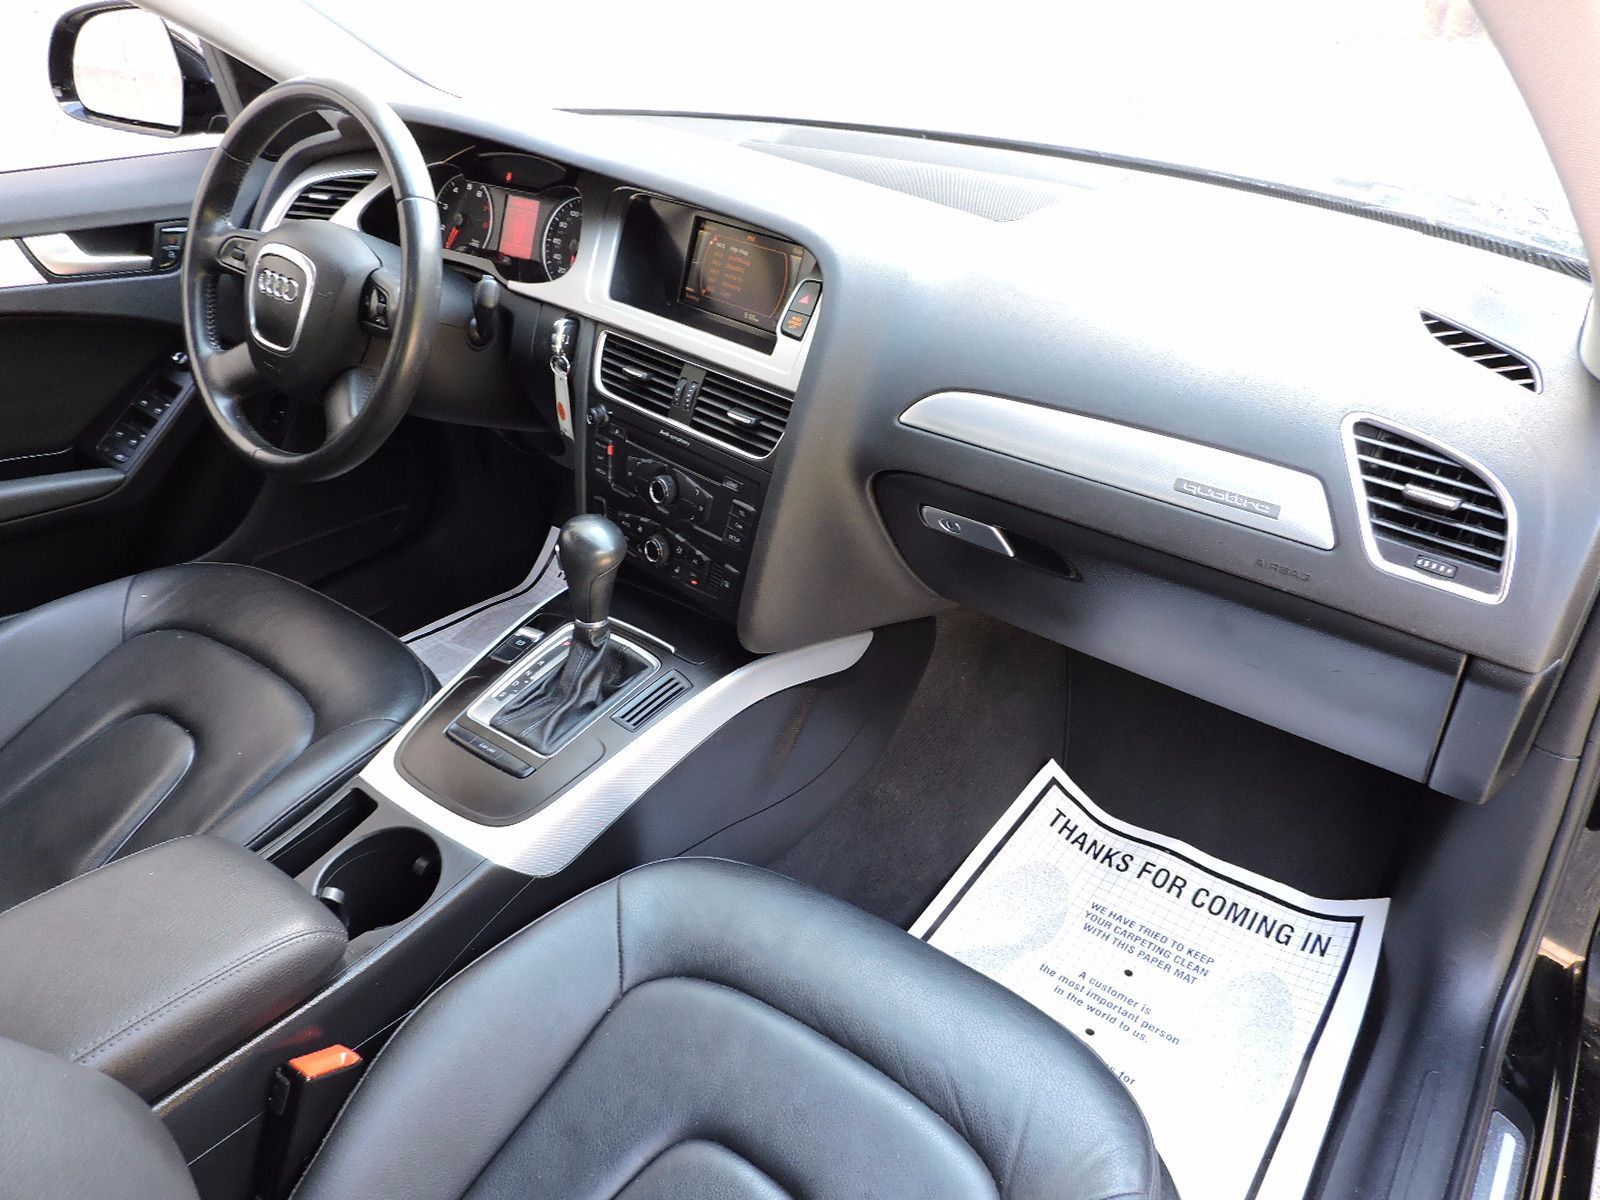 used 2009 audi a4 2.0t prem at saugus auto mall